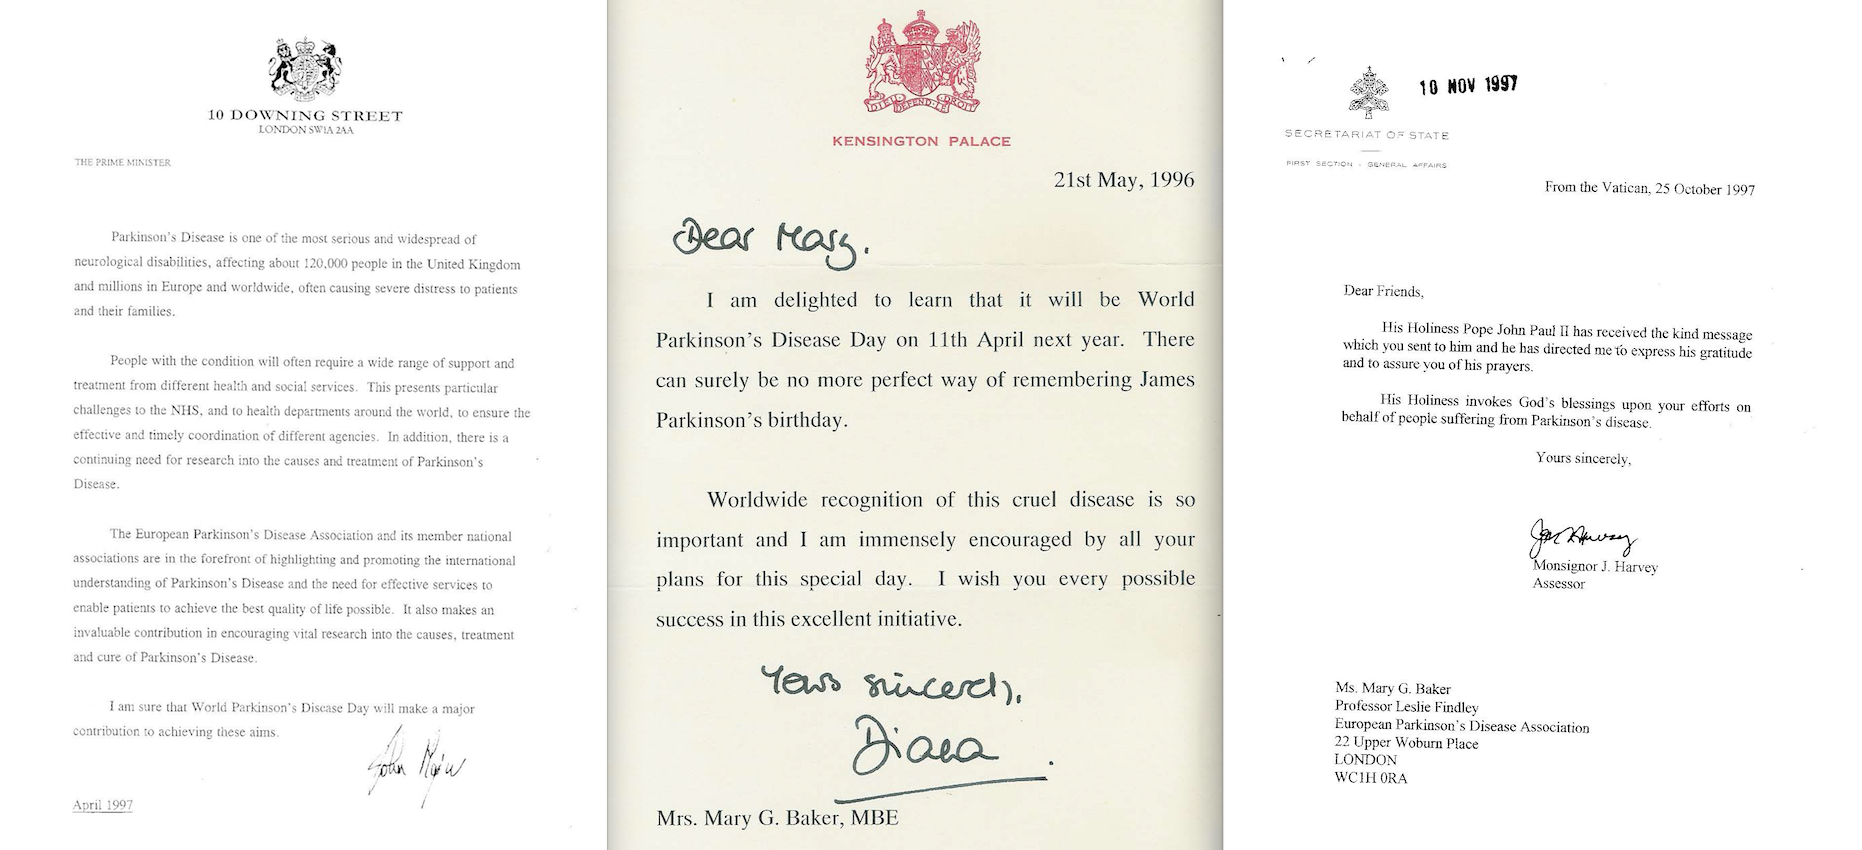 John Major, Princess Diana and Poppe John Paul II letters